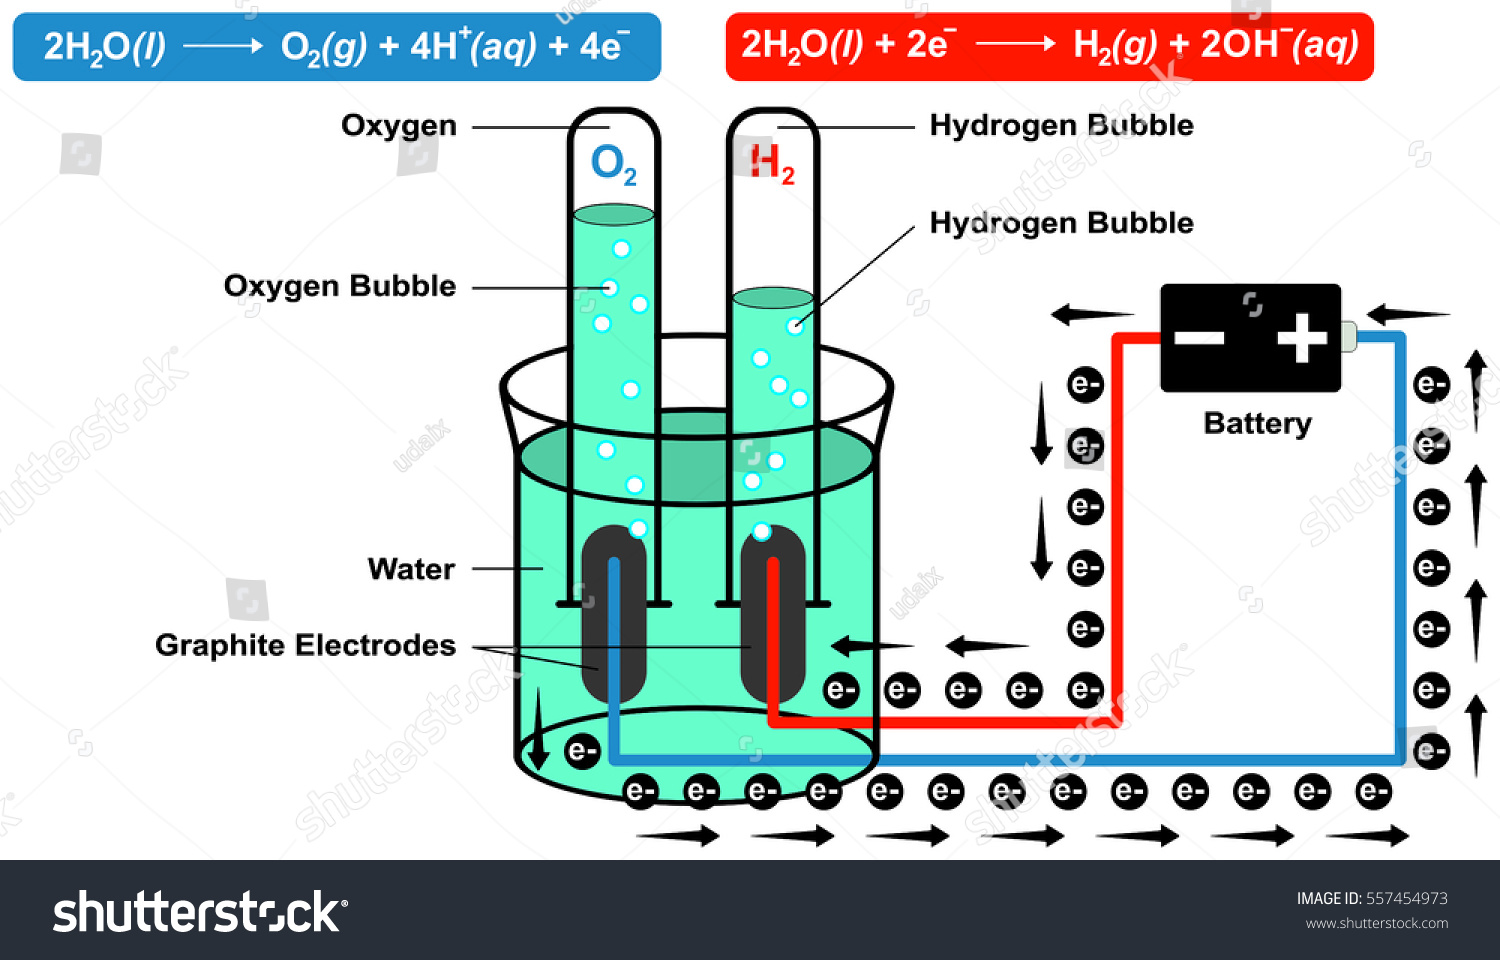 Schematic Diagram Battery Operation Bubble - Trusted Wiring Diagram •